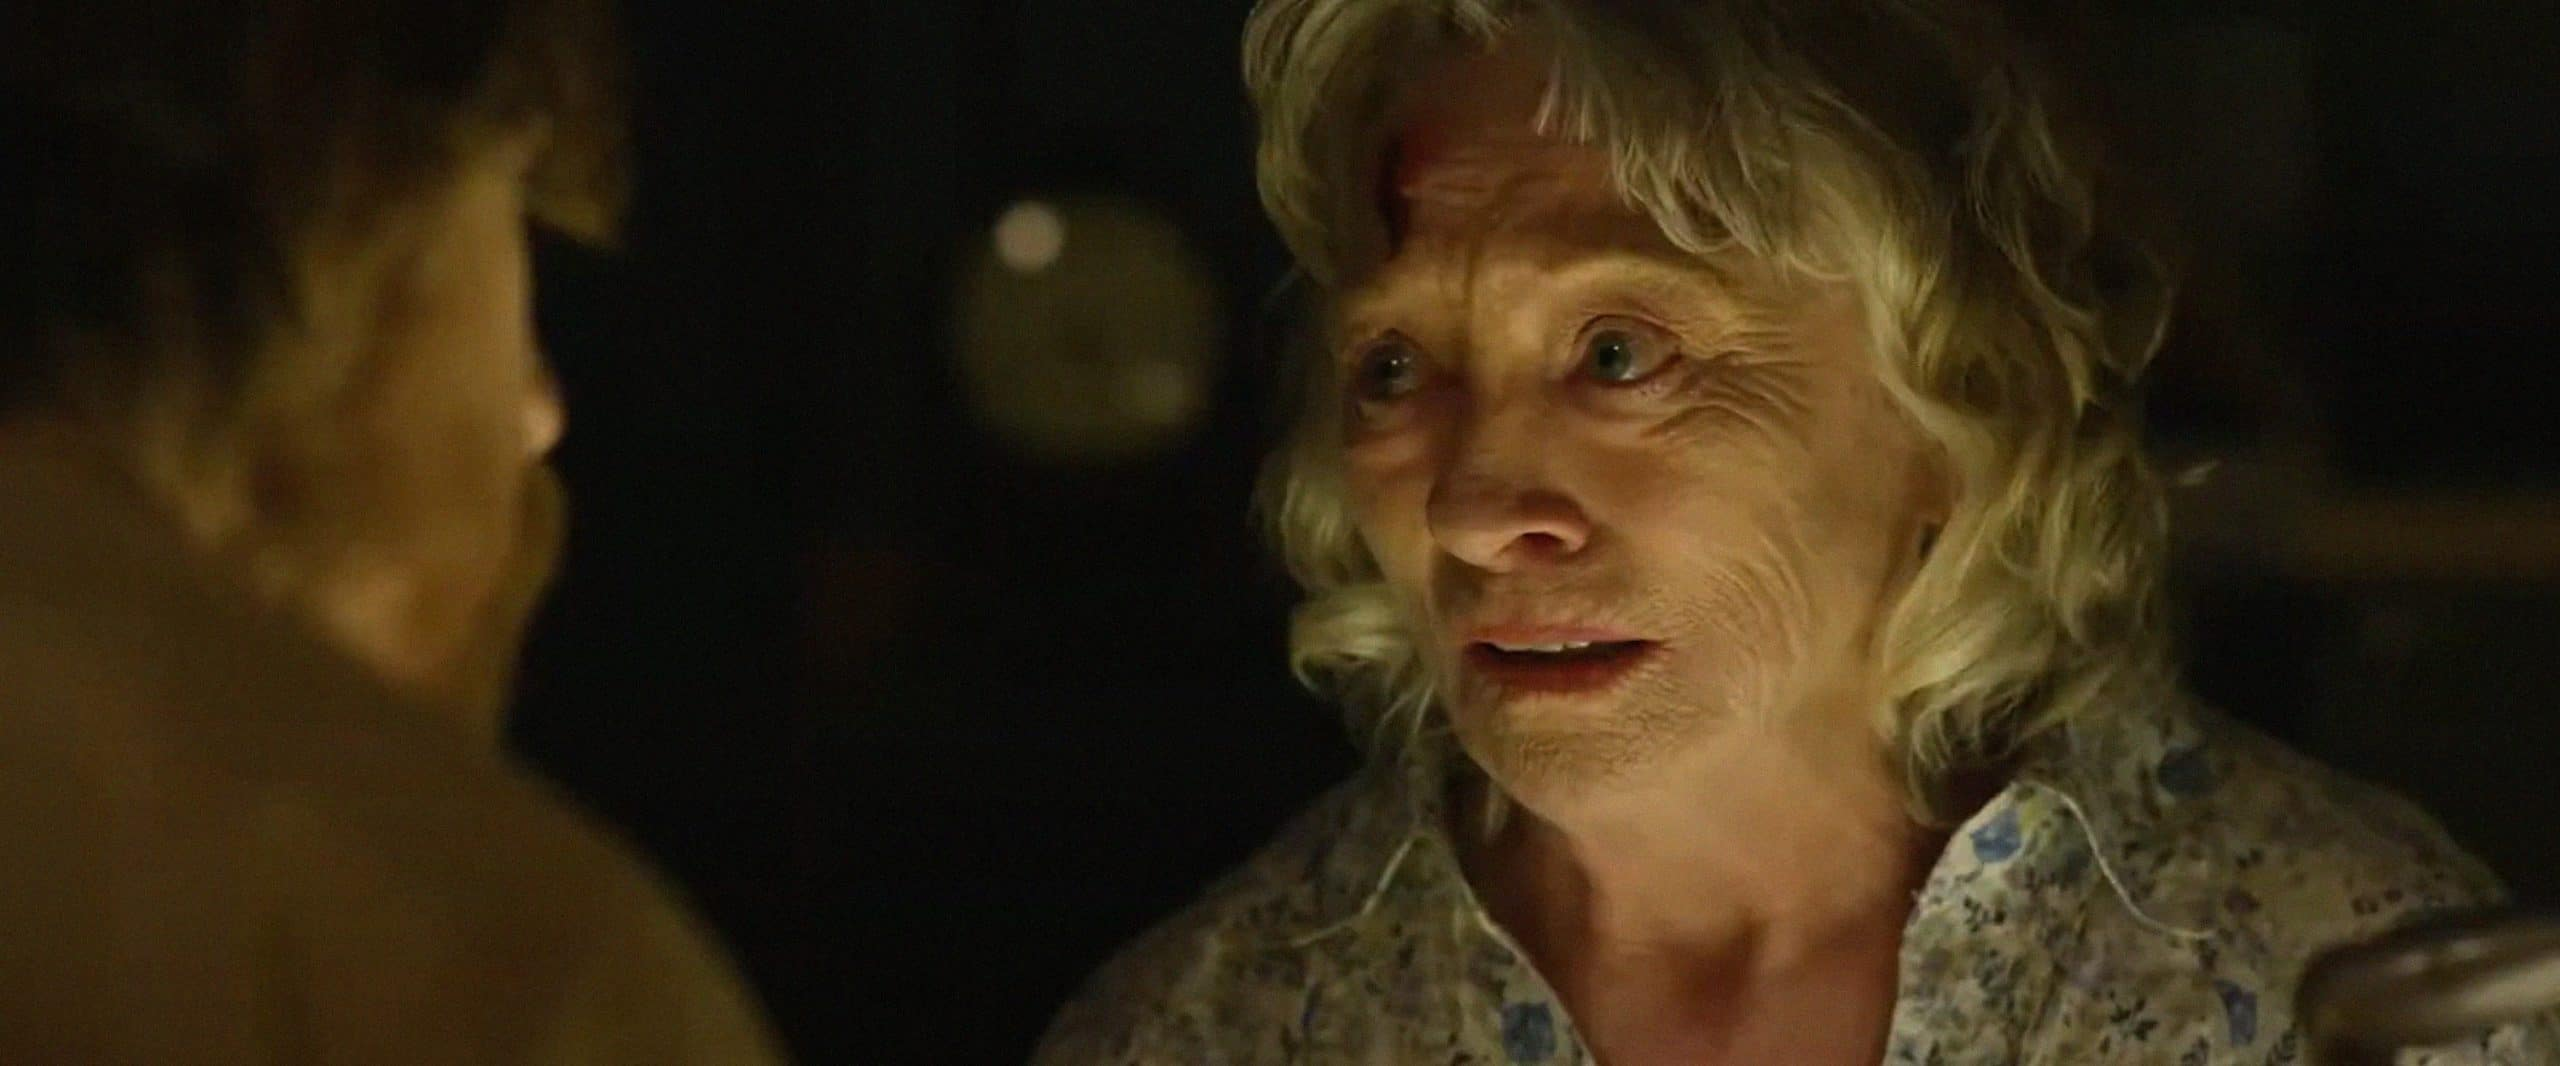 LIMBO, from left: Lew Temple (back to camera), Veronica Cartwright, 2019